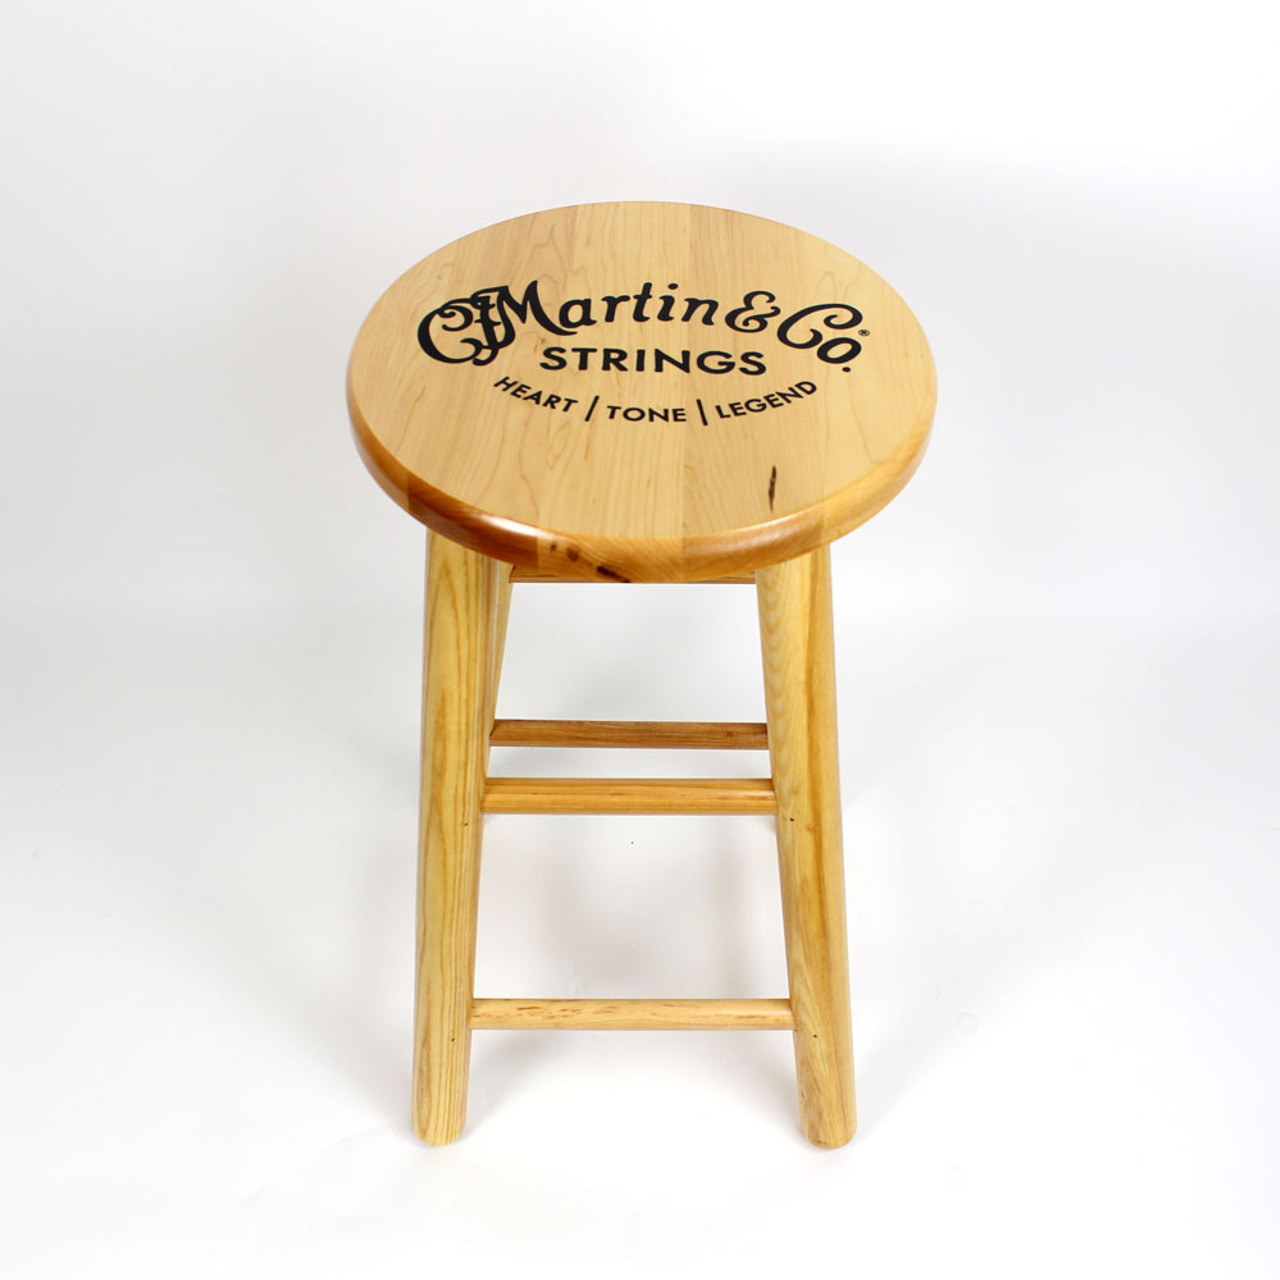 Wondrous Cf Martin Co Logo Wooden Bar Stool 24 Pdpeps Interior Chair Design Pdpepsorg